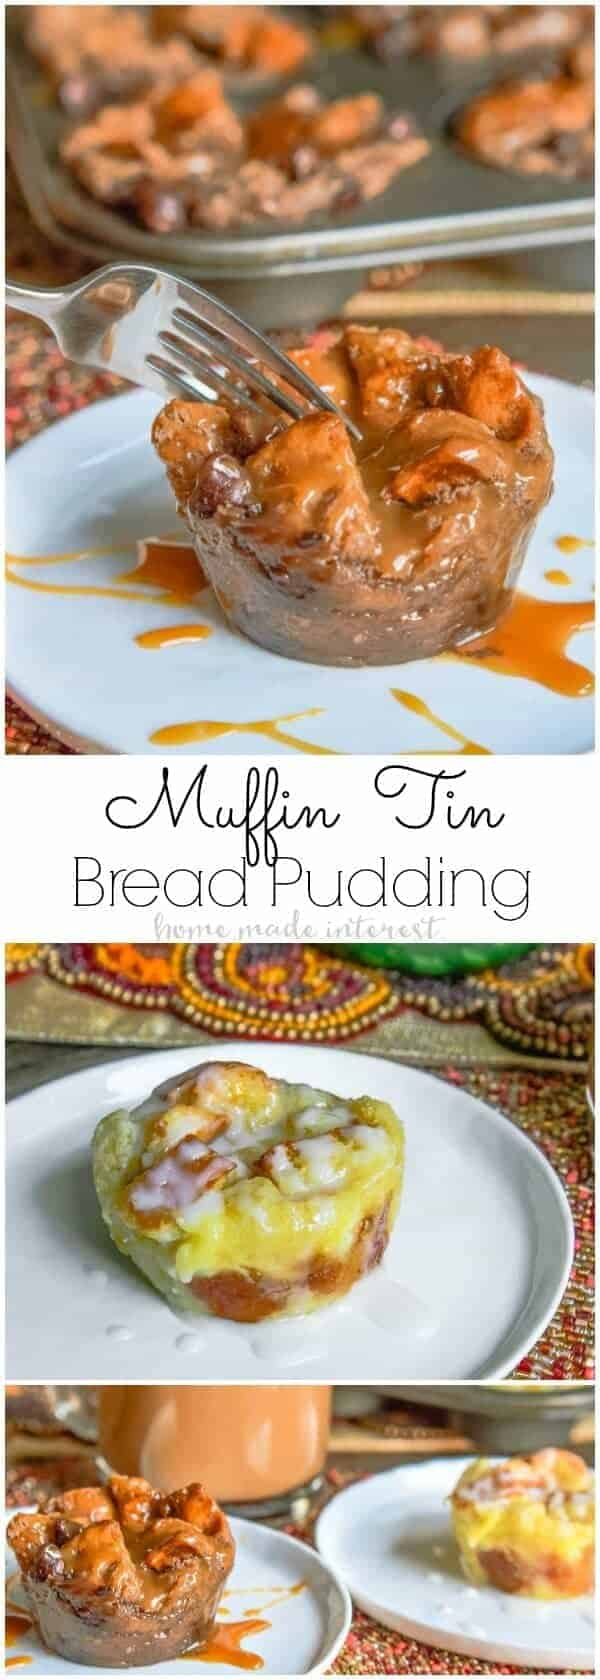 Muffin Tin Bread Pudding by Home Made Interest | Muffin Tins are for more than just cupcakes and muffins. You are going to love these muffin tin recipes!